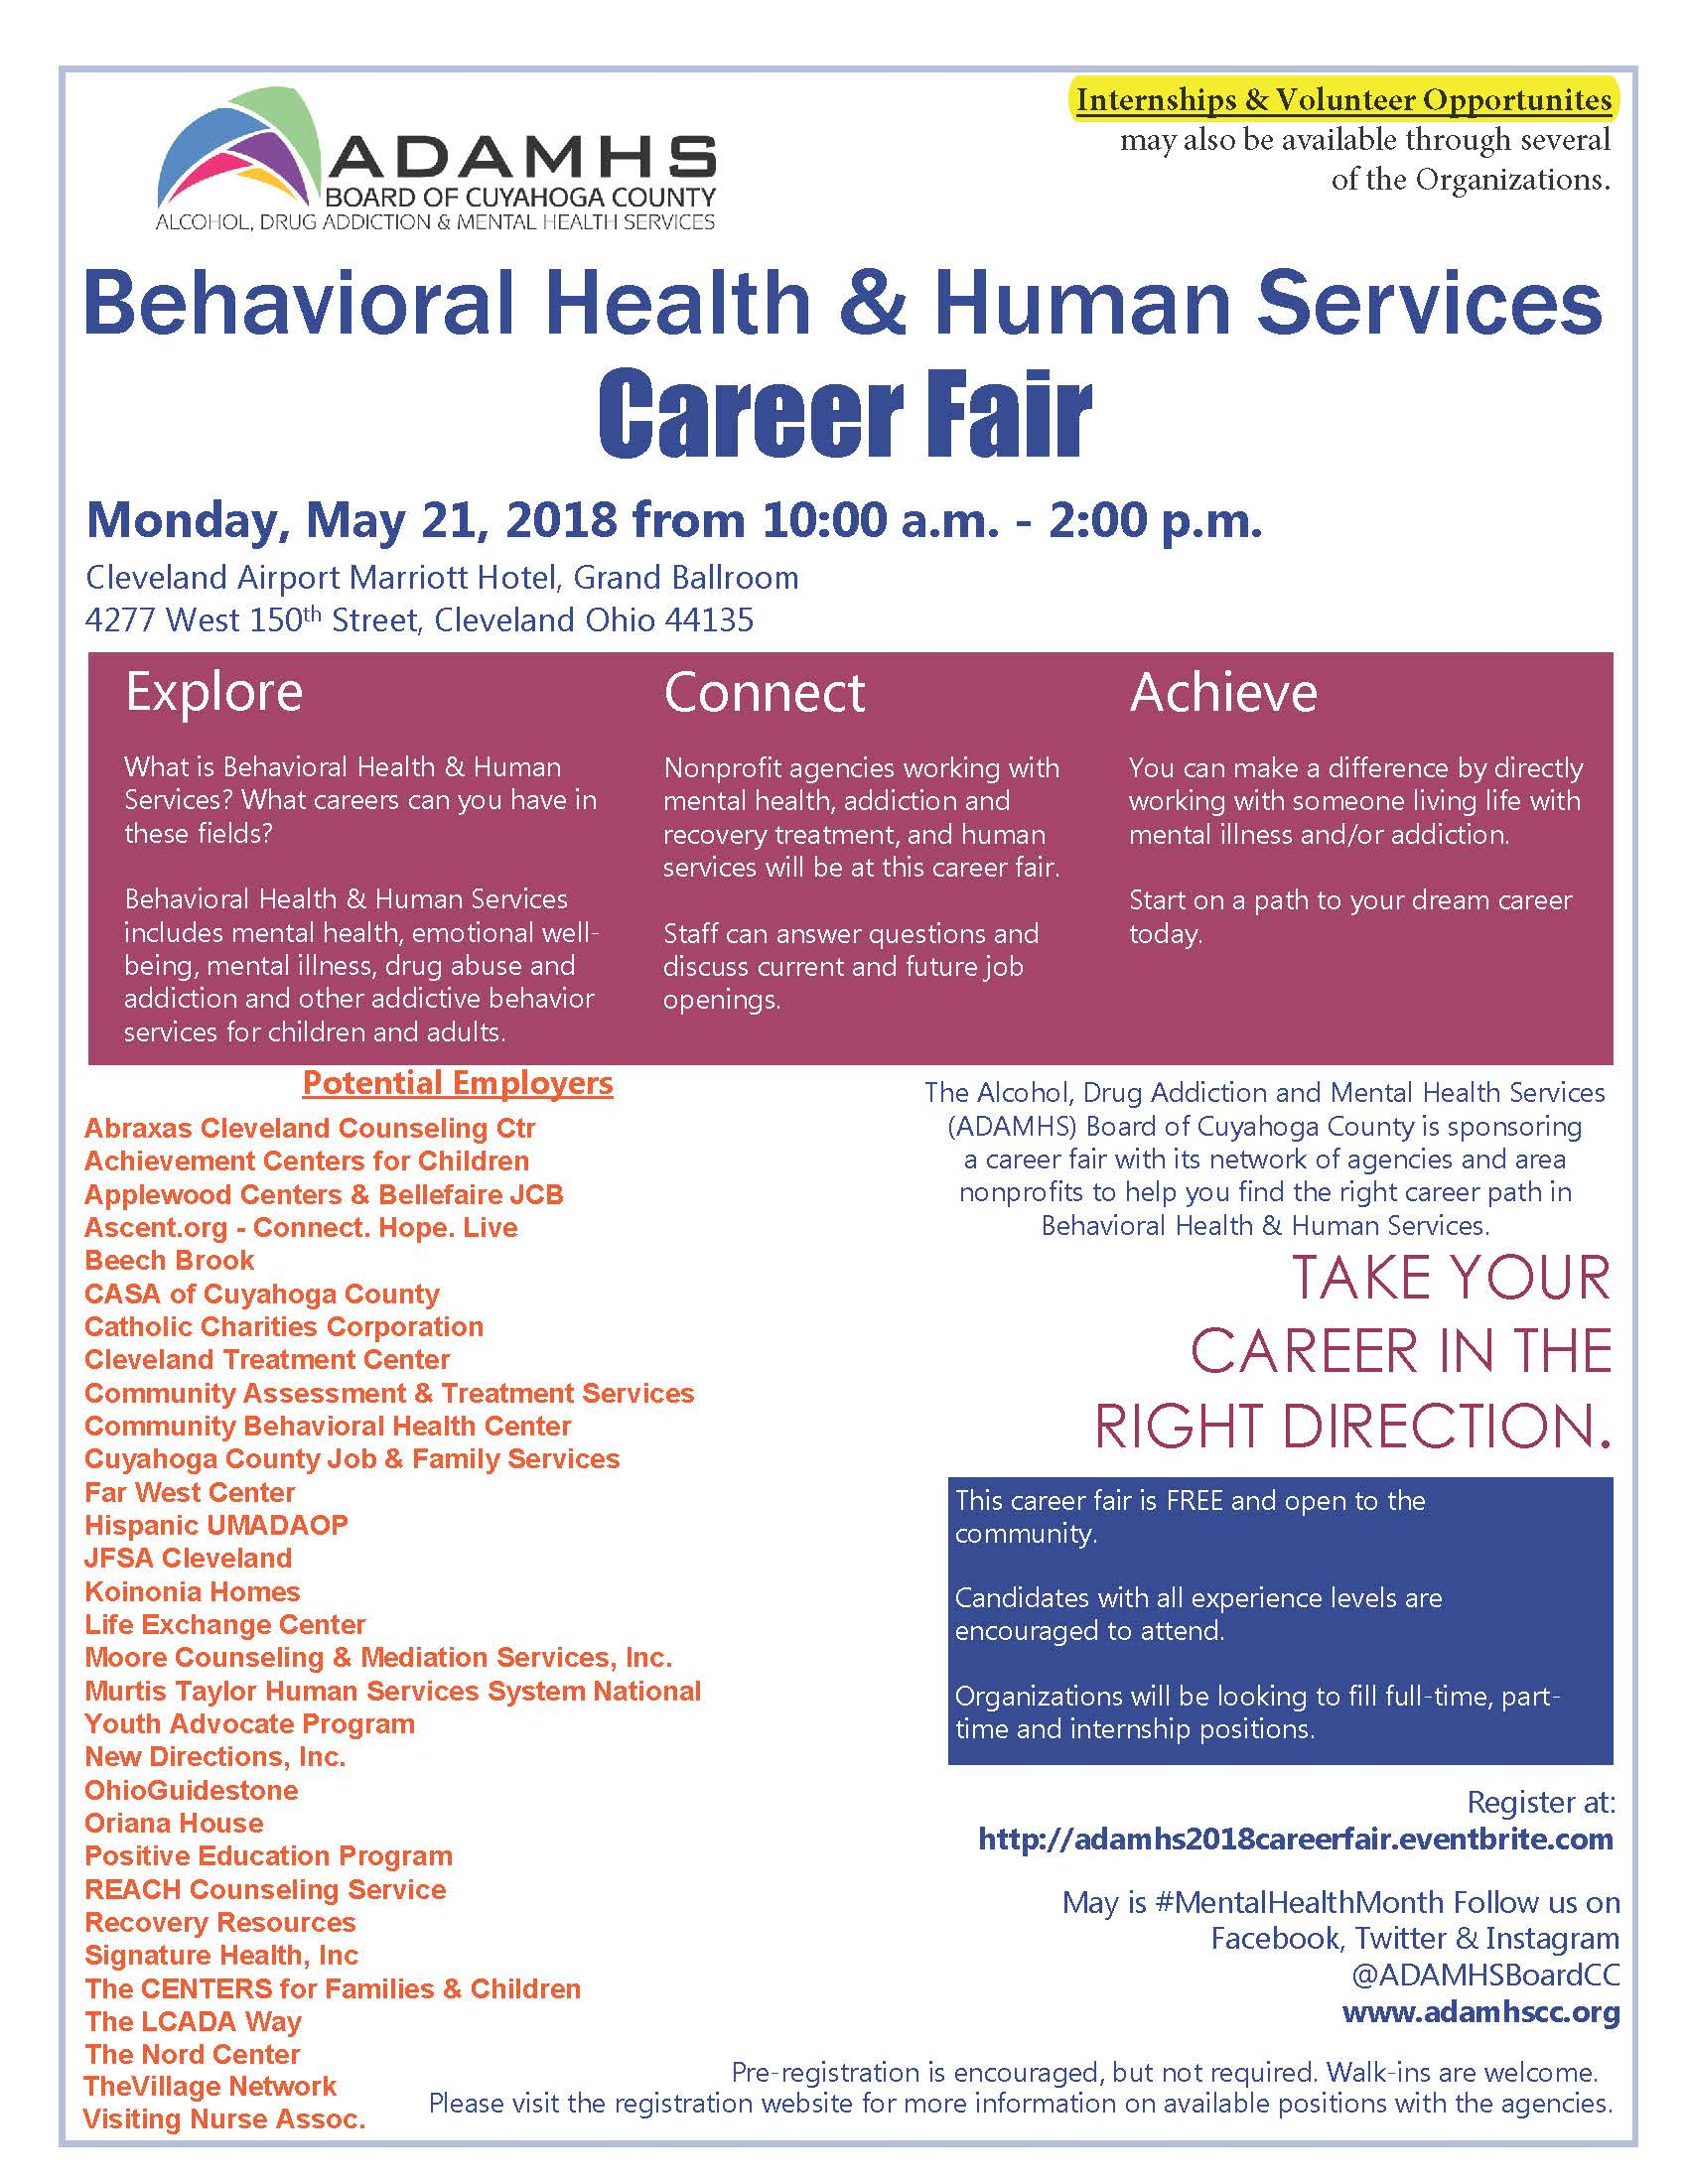 Behavioral Health & Human Services Career Fair